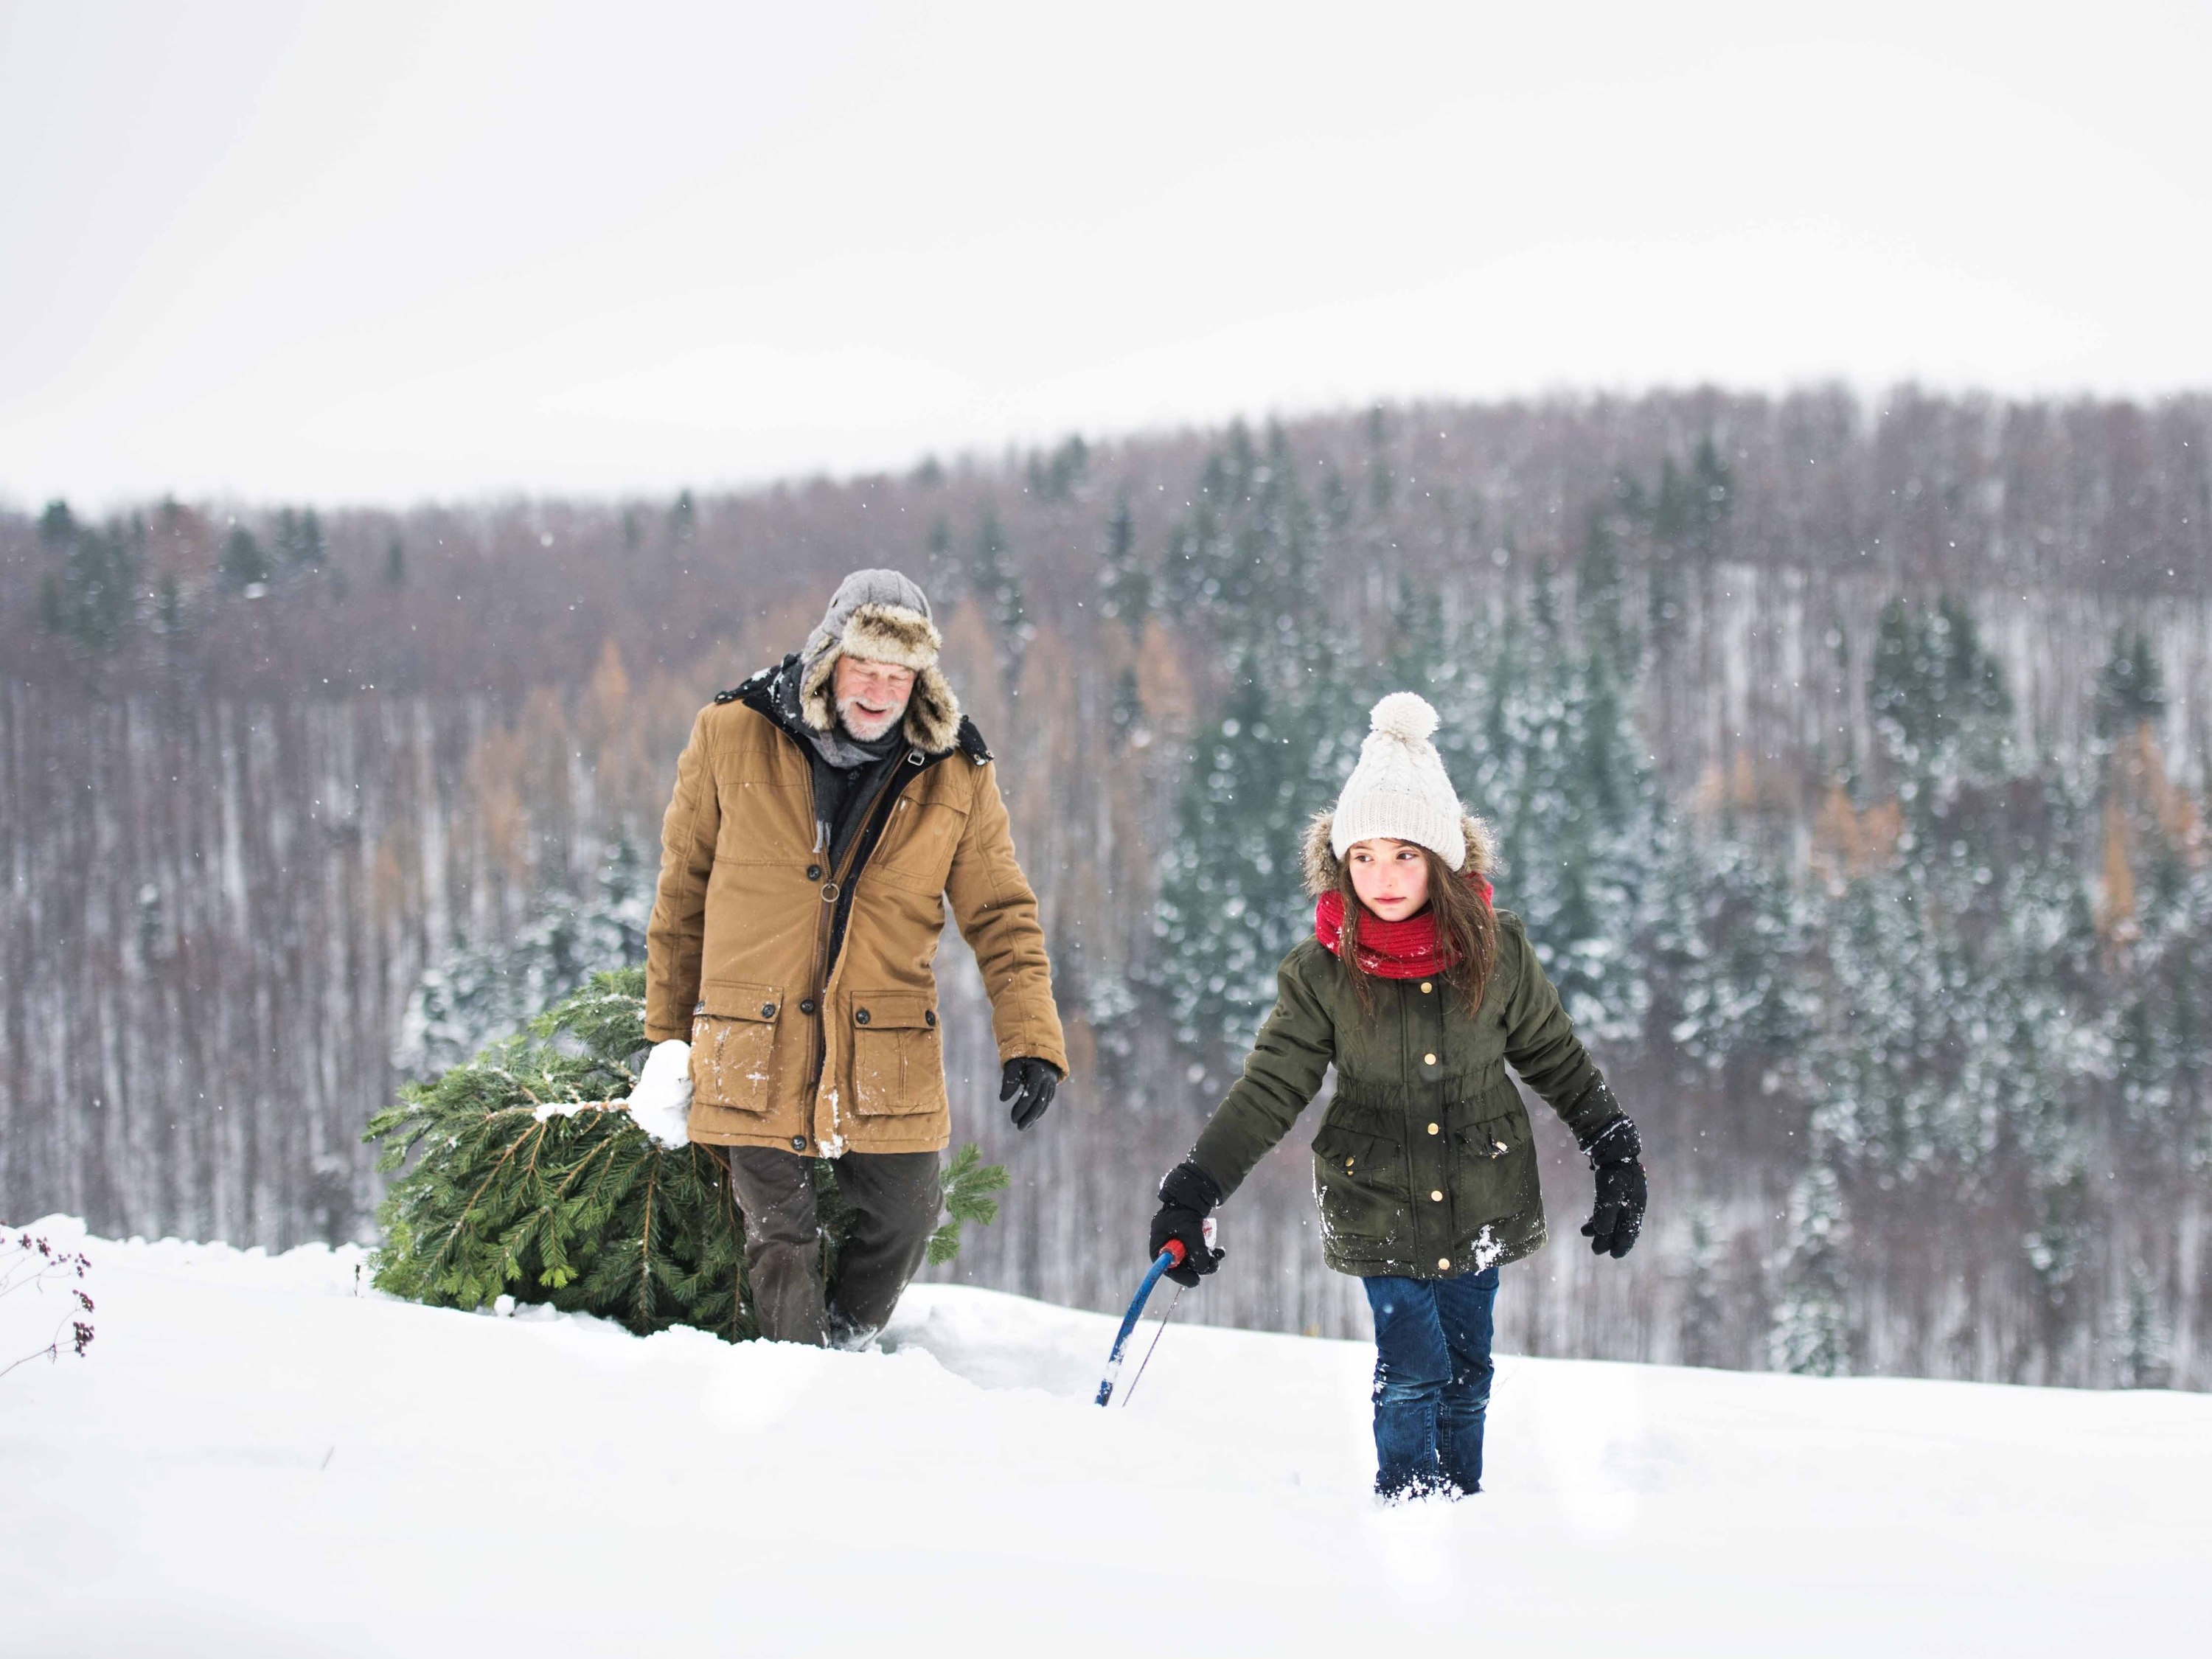 Here is how you can legally cut down your own Christmas tree at a national forest this year